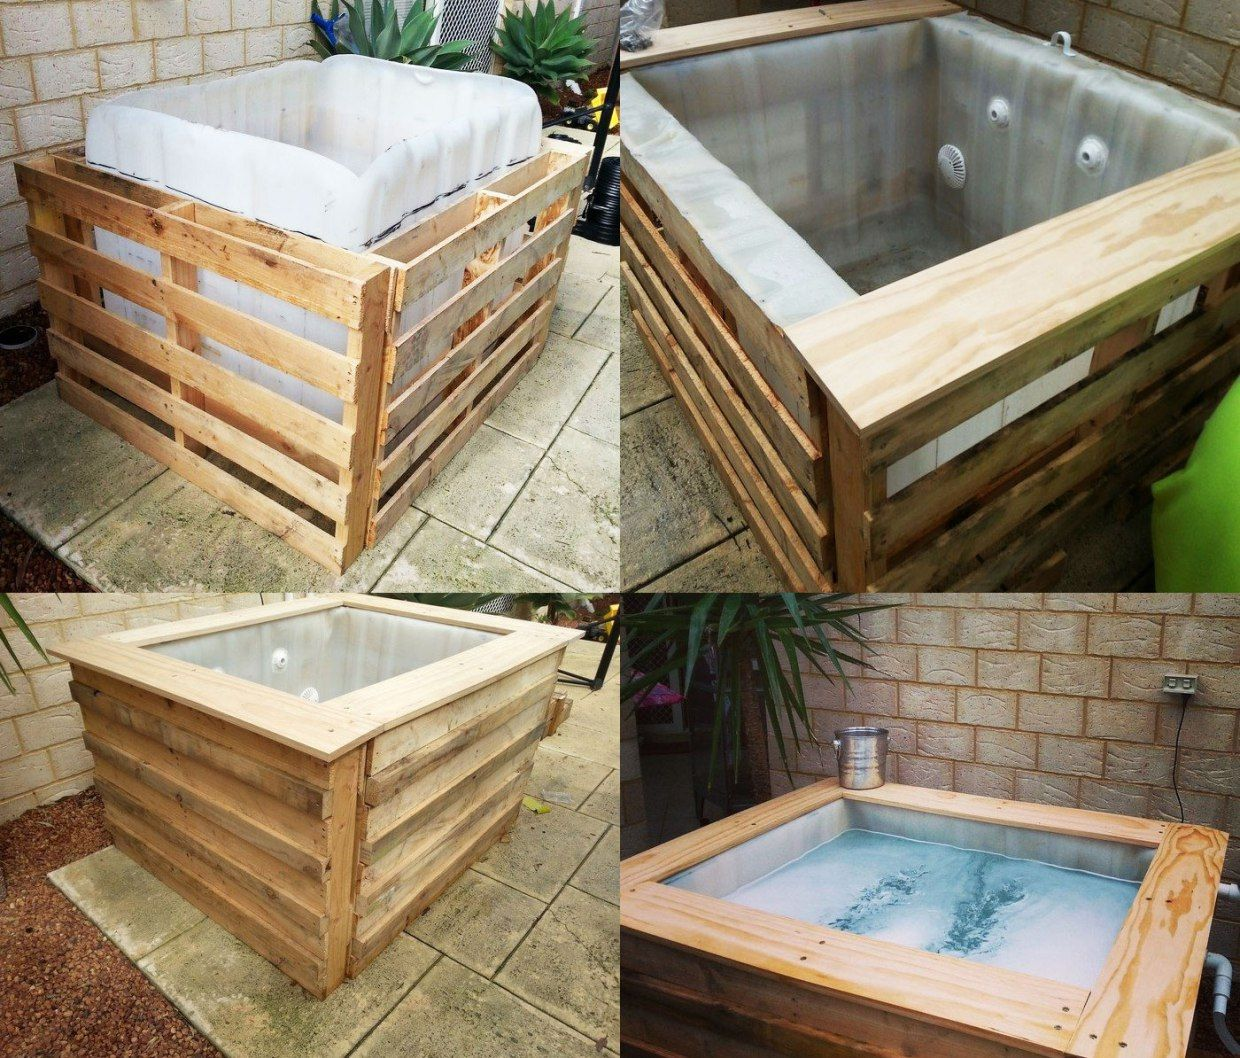 diy homemade swimming pool gallery livestock water trough trash dumpsters and sea containers. Black Bedroom Furniture Sets. Home Design Ideas